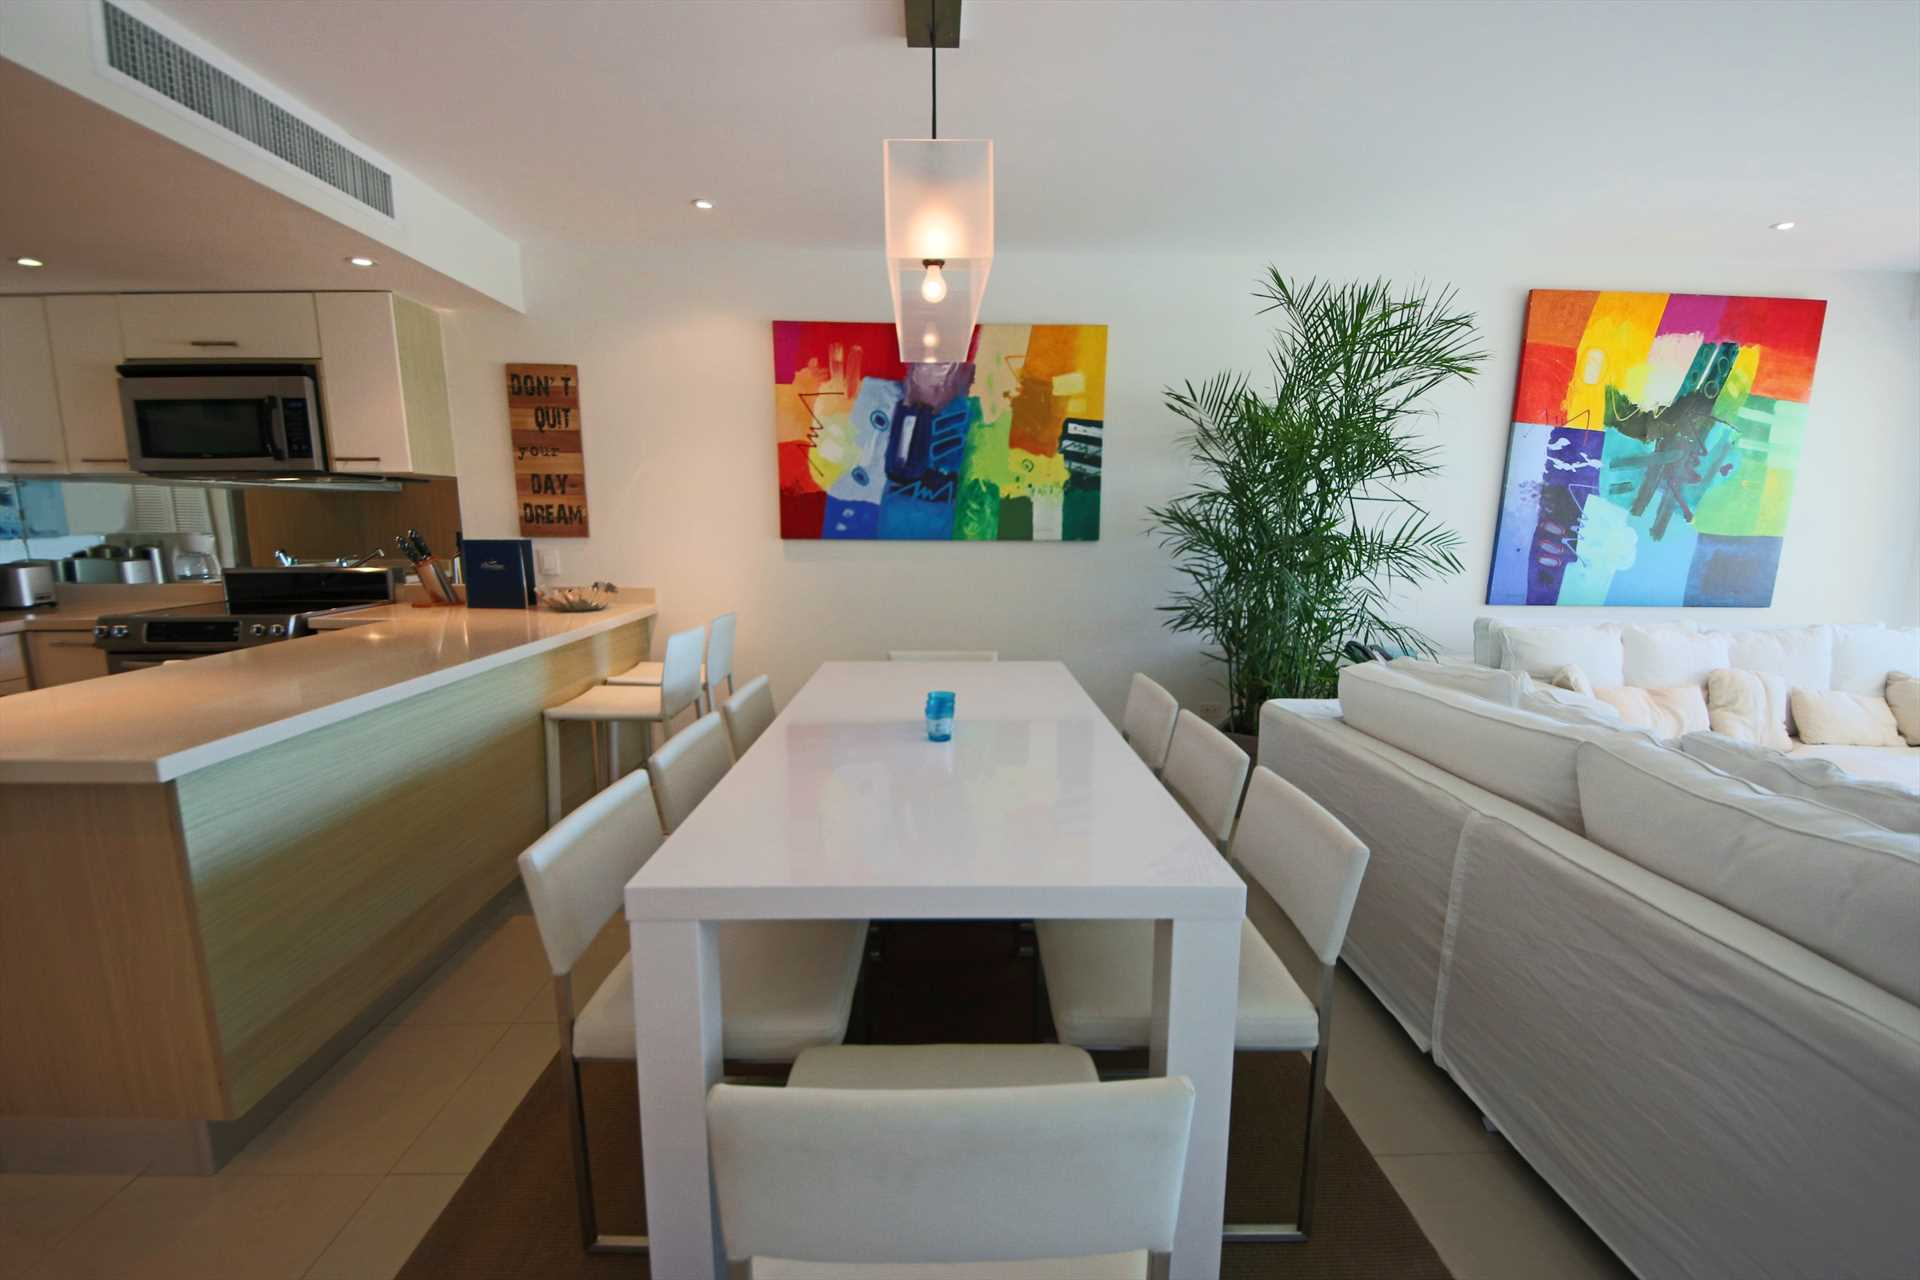 8-seat dinning table in living room